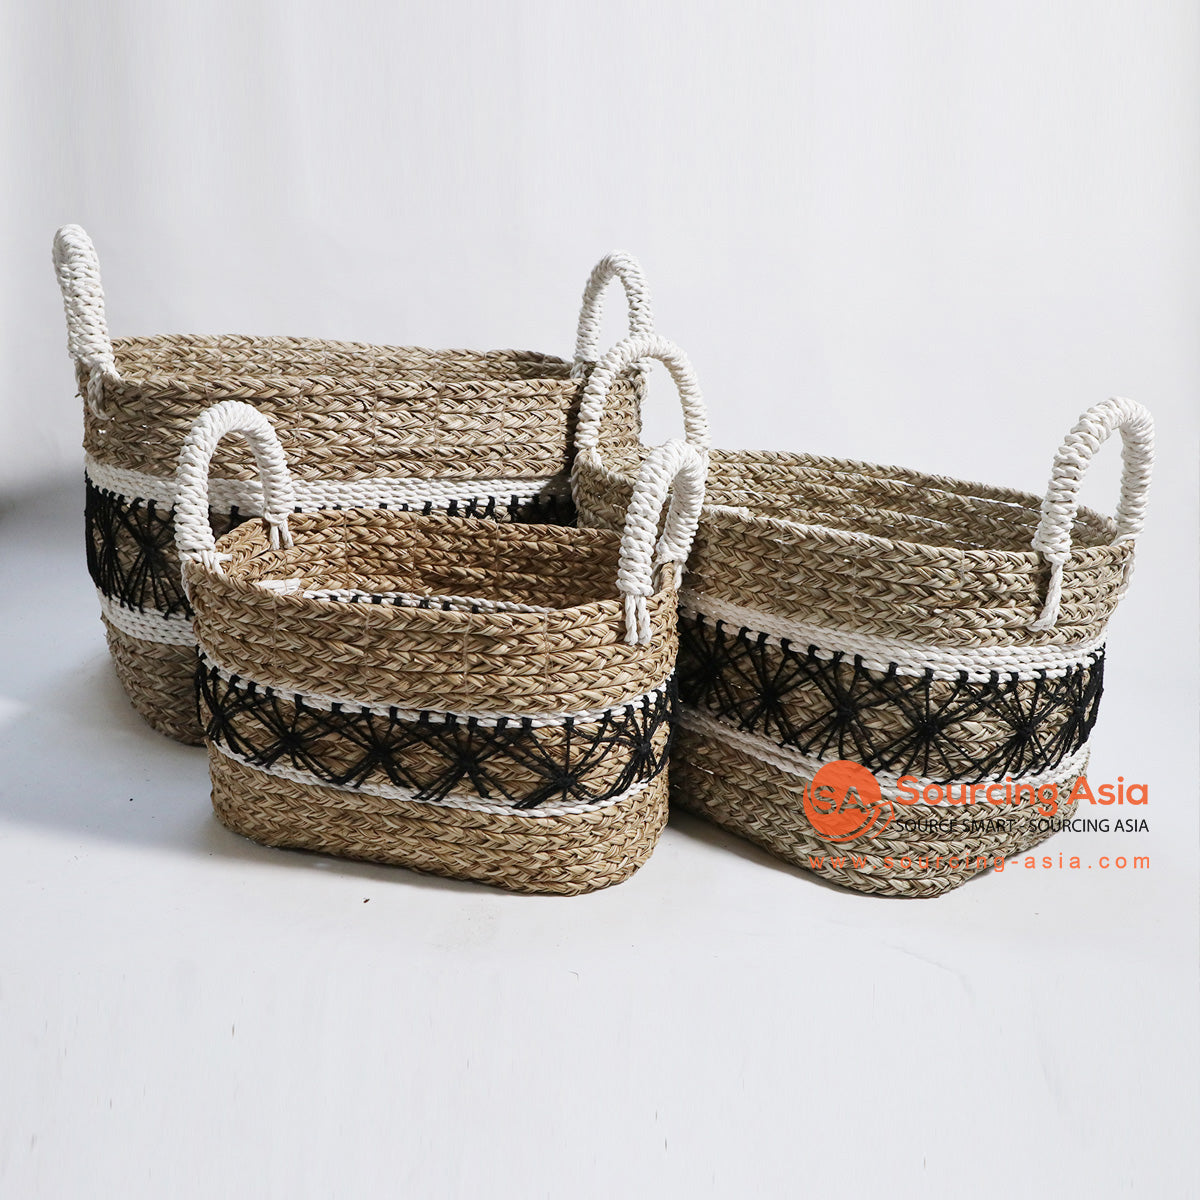 HBSC135-1 SET OF 3 MENDONG AND MACRAME BASKETS